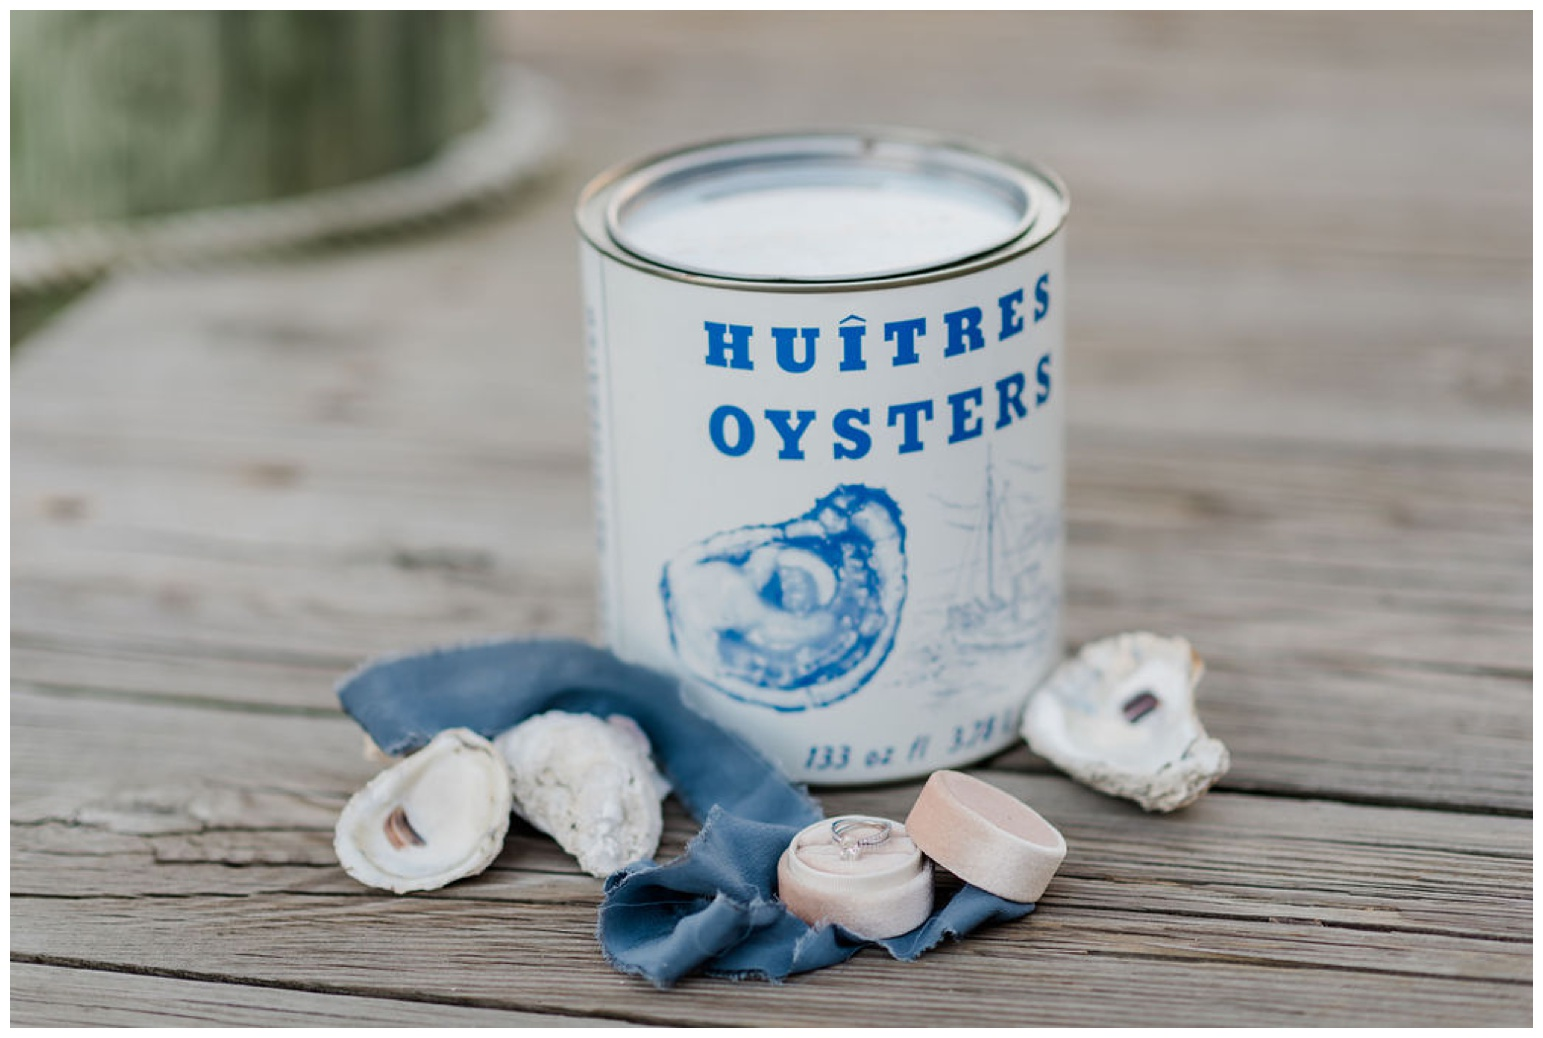 huitres - oysters - madison seafood company - maryland - dock - pier - outdoor coastal - bay inspired photoshoot - engagement ring and velvet ring box styling with oyster shells - coastal - nautical ideas